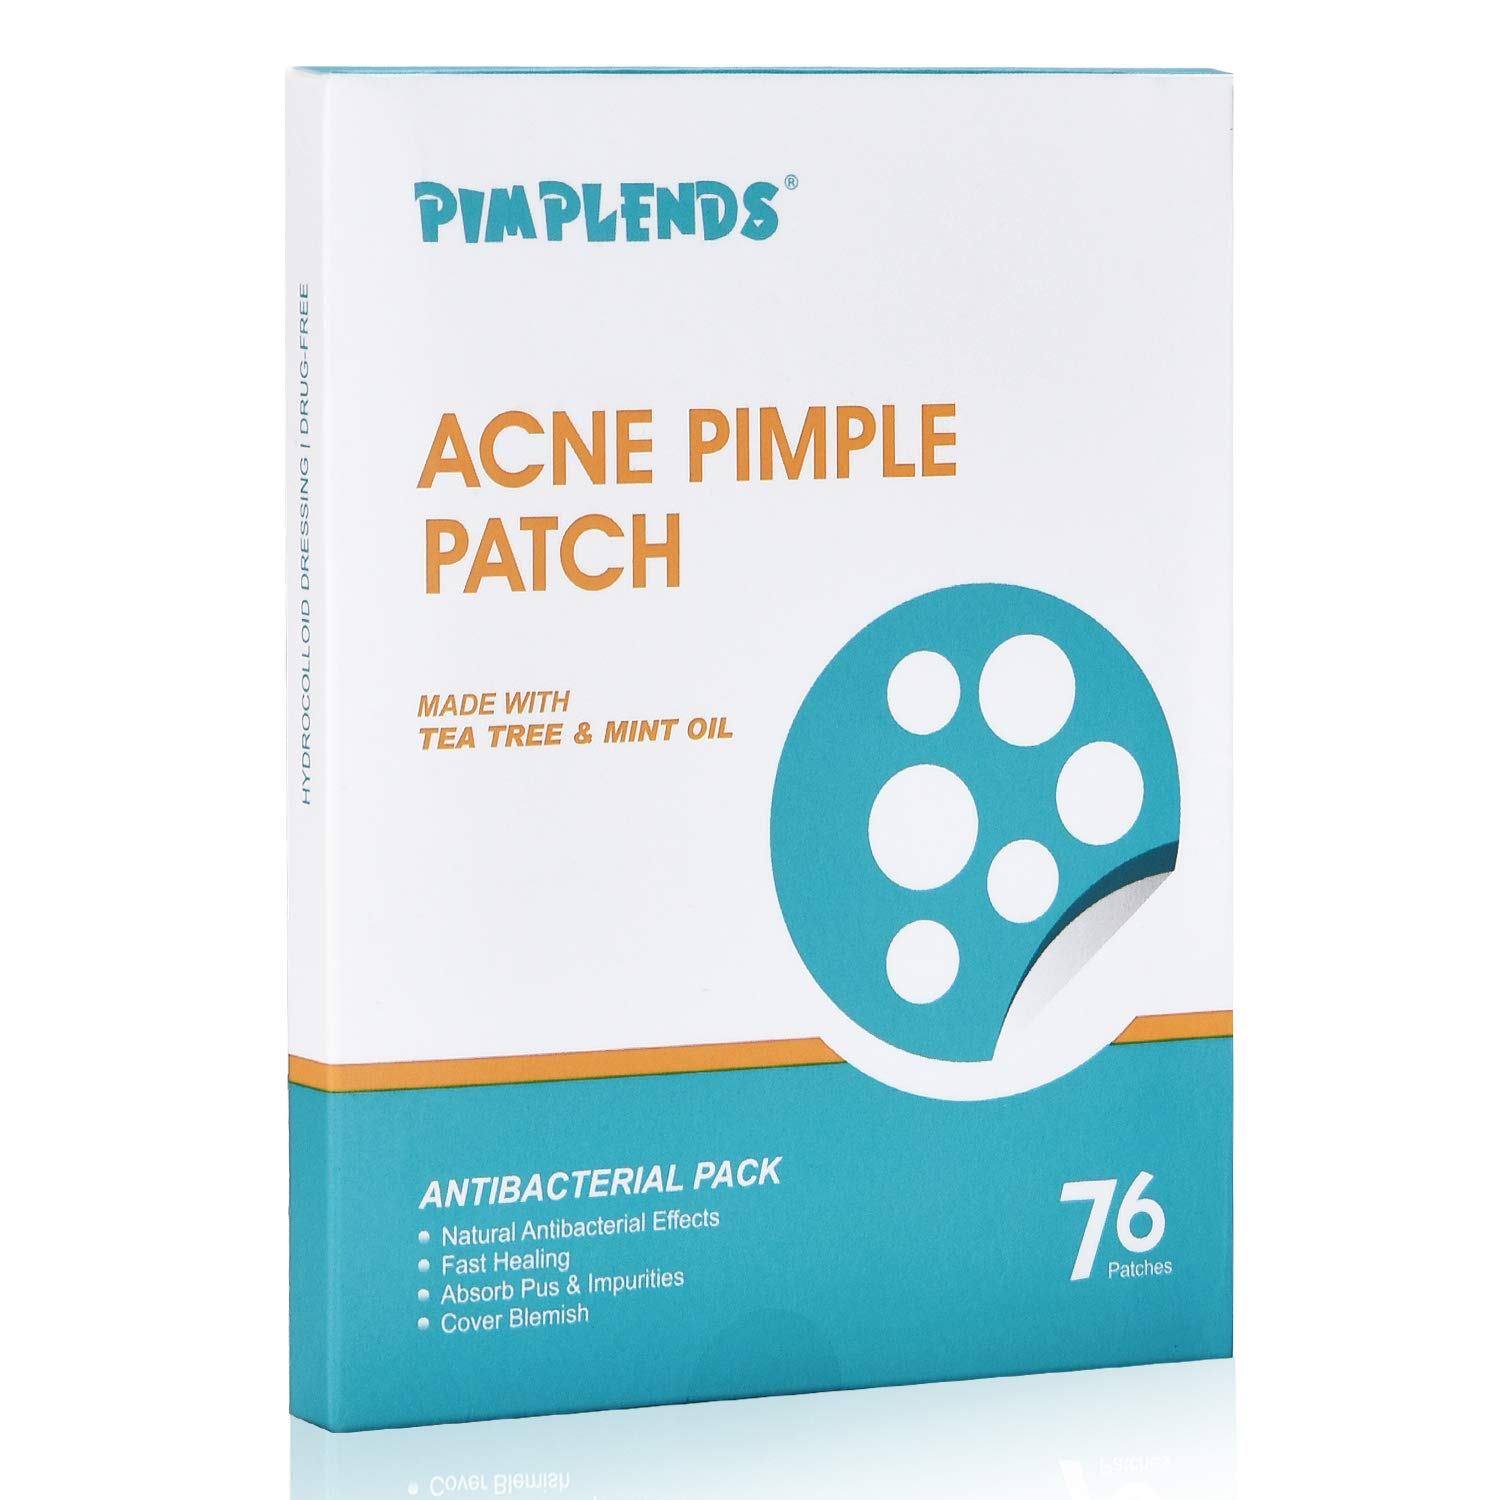 PIMPLENDS Acne Pimple Patch Tea Tree & Mint Oil Pimple Sticker Pimple Dots Acne Cover Patch Acne Treatment Acne Stickers Absorbing Spot Dot | Drug-free Hydrocolloid Bandages 76 Patche